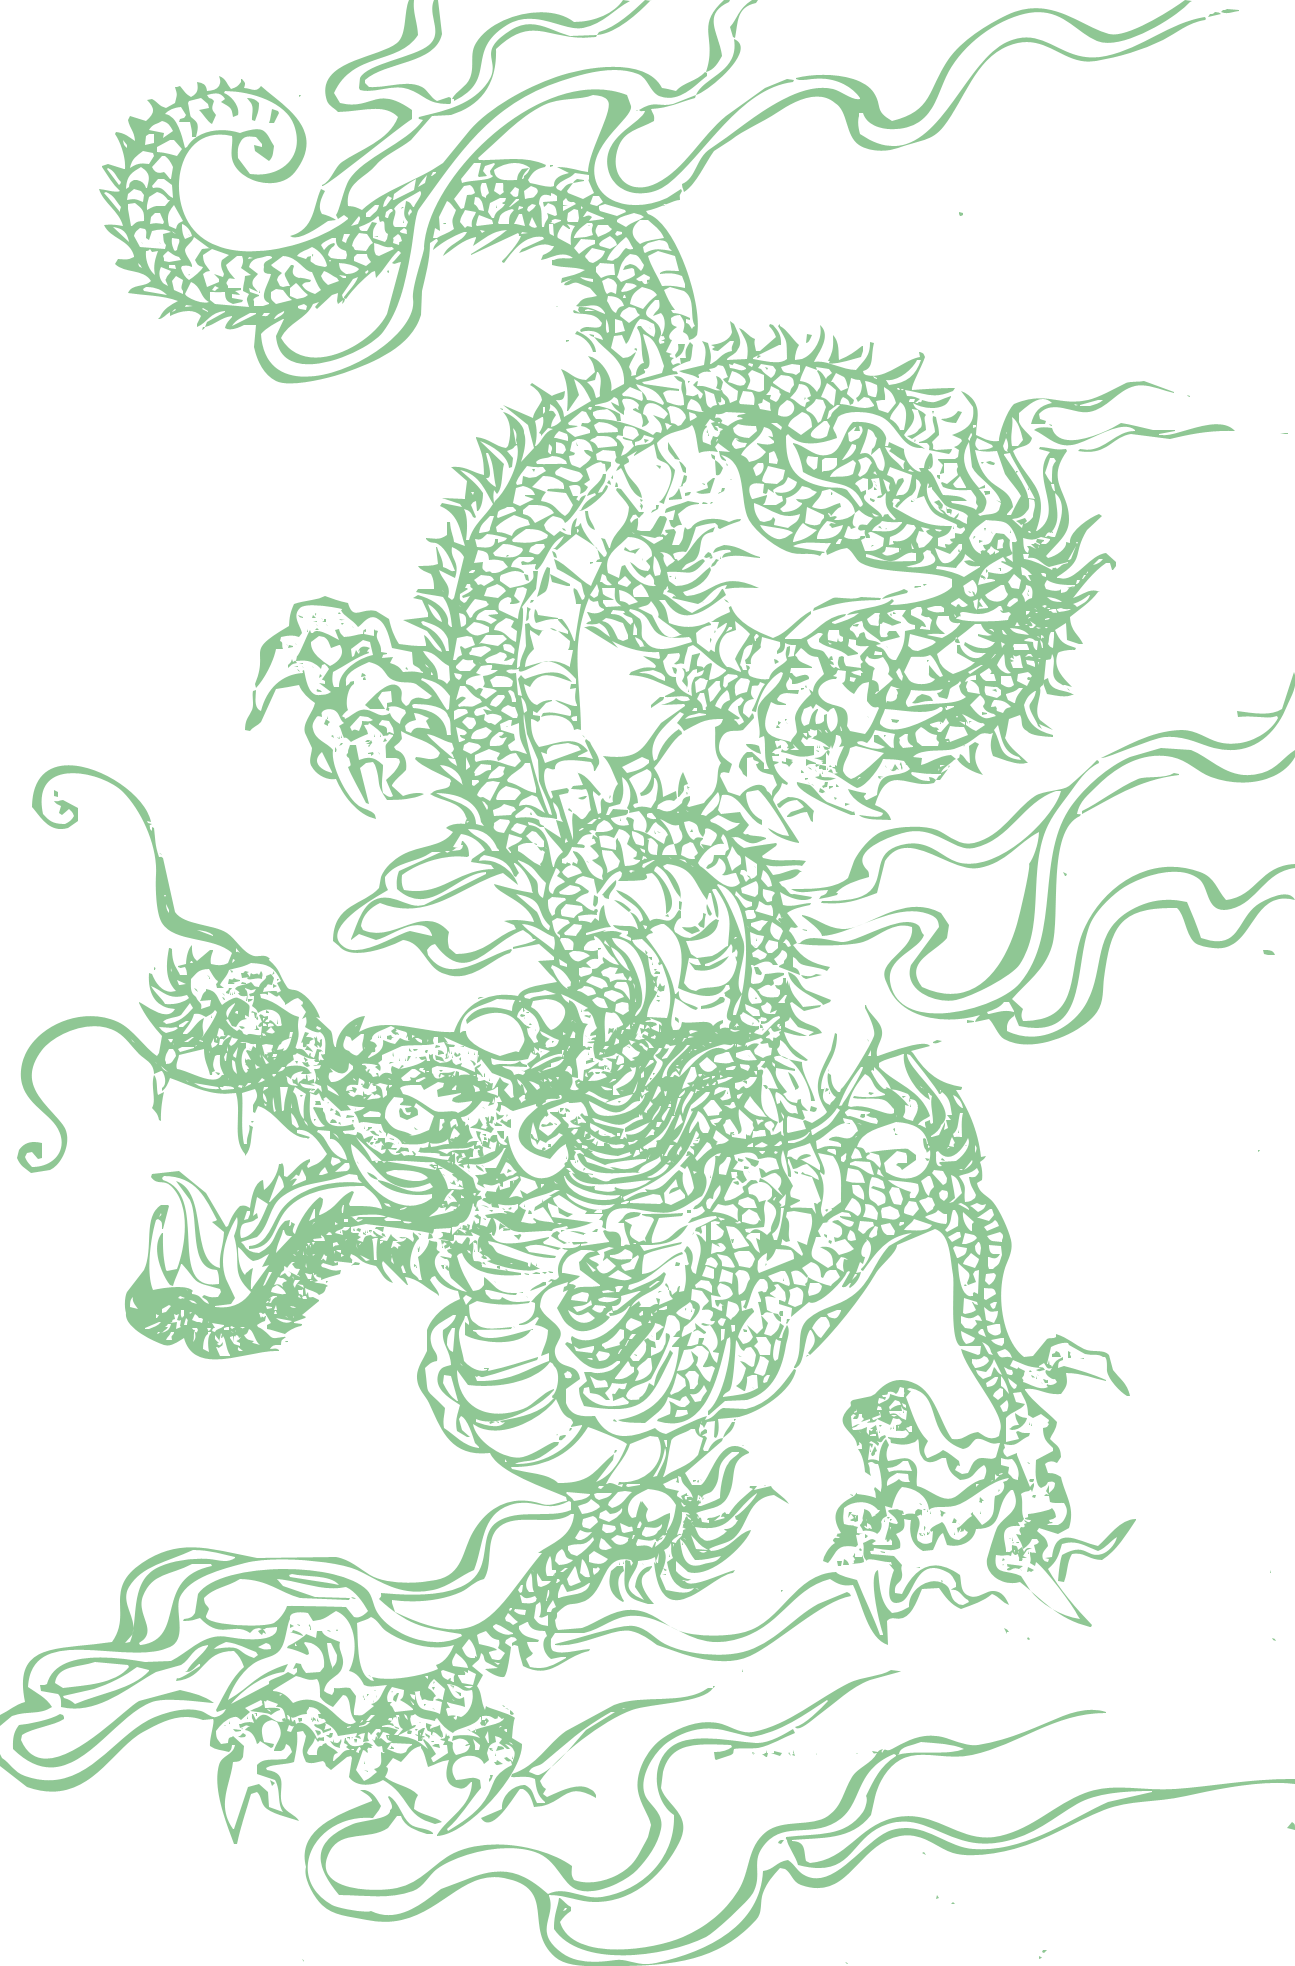 Free Download Dragon Png Images image #20242